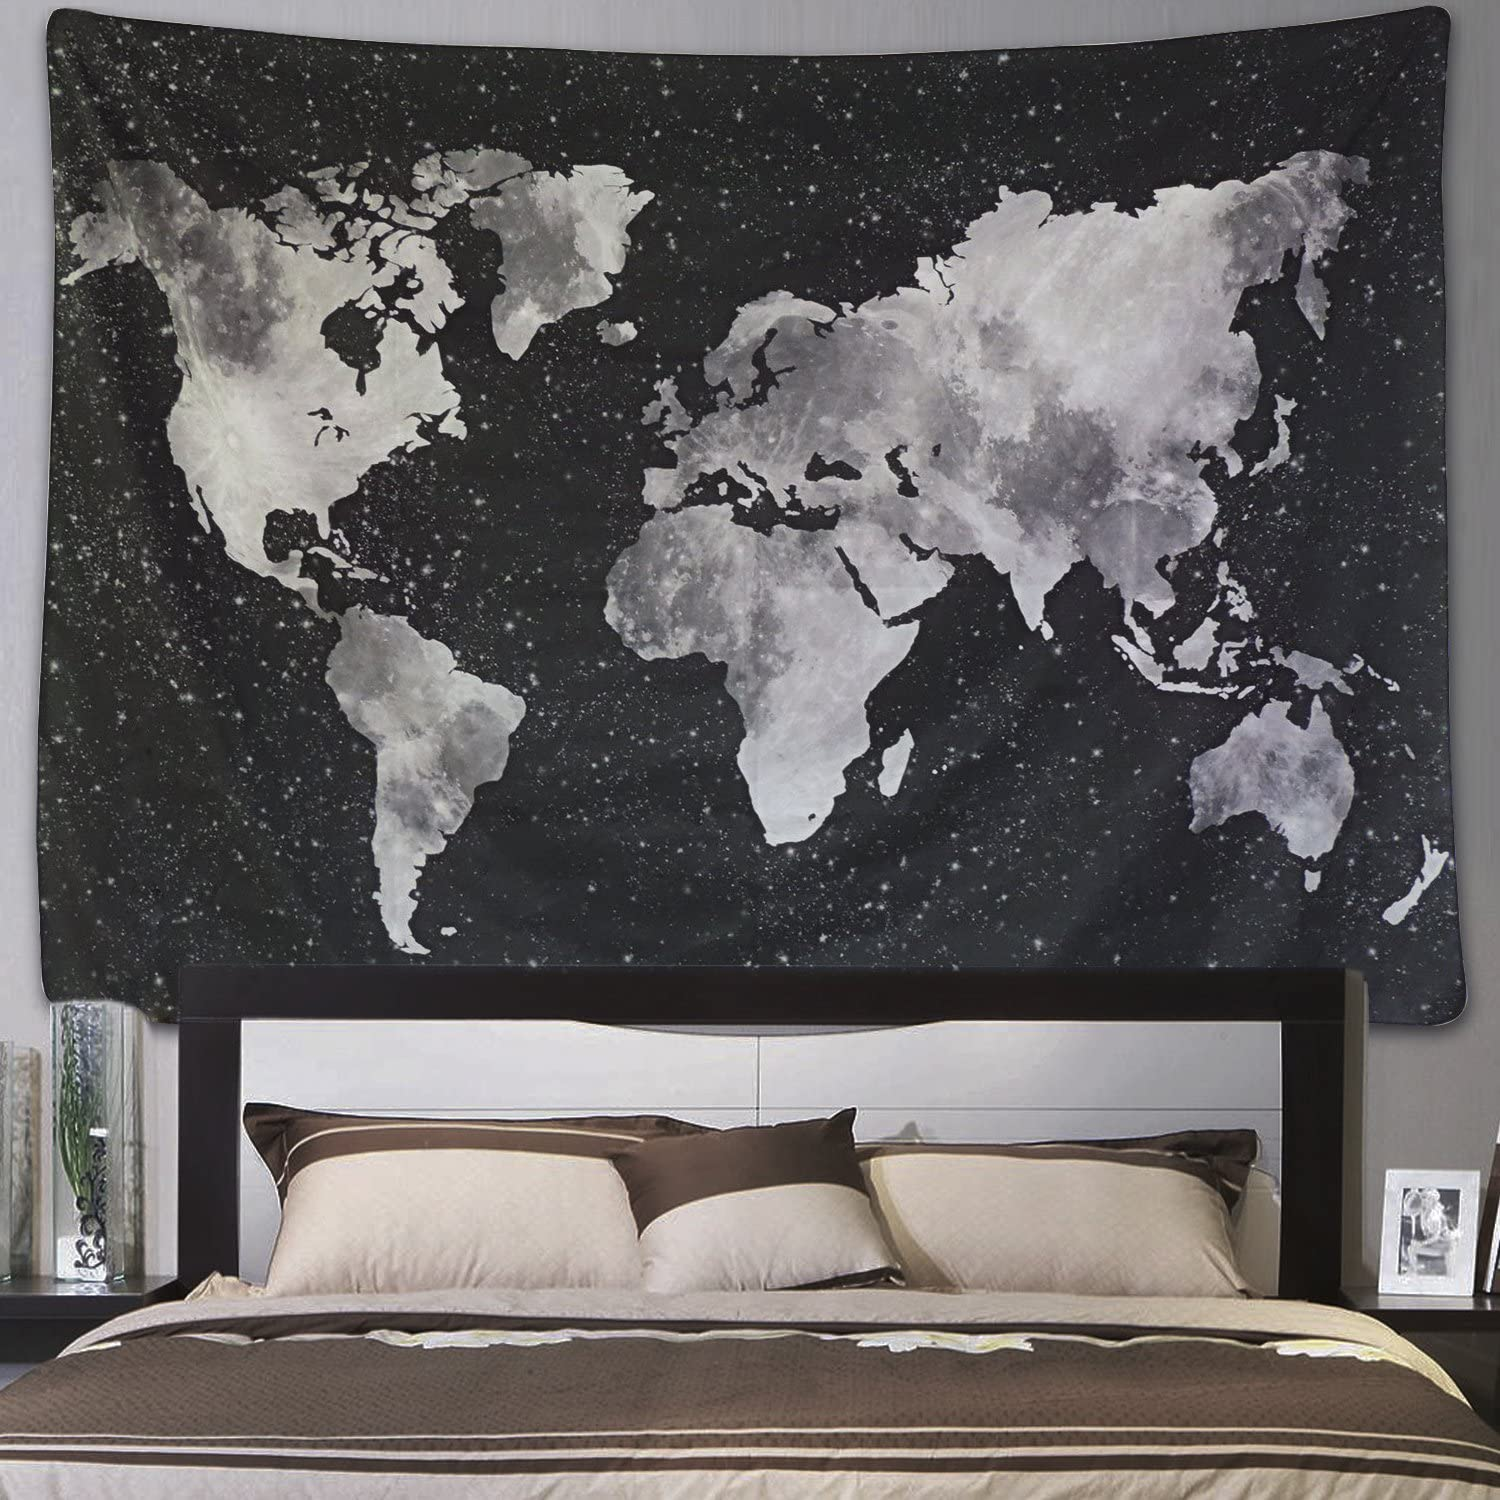 World Map Wall Tapestries Amazon.com: ARFBEAR Starry World Map Tapestry, Wall hangings Black